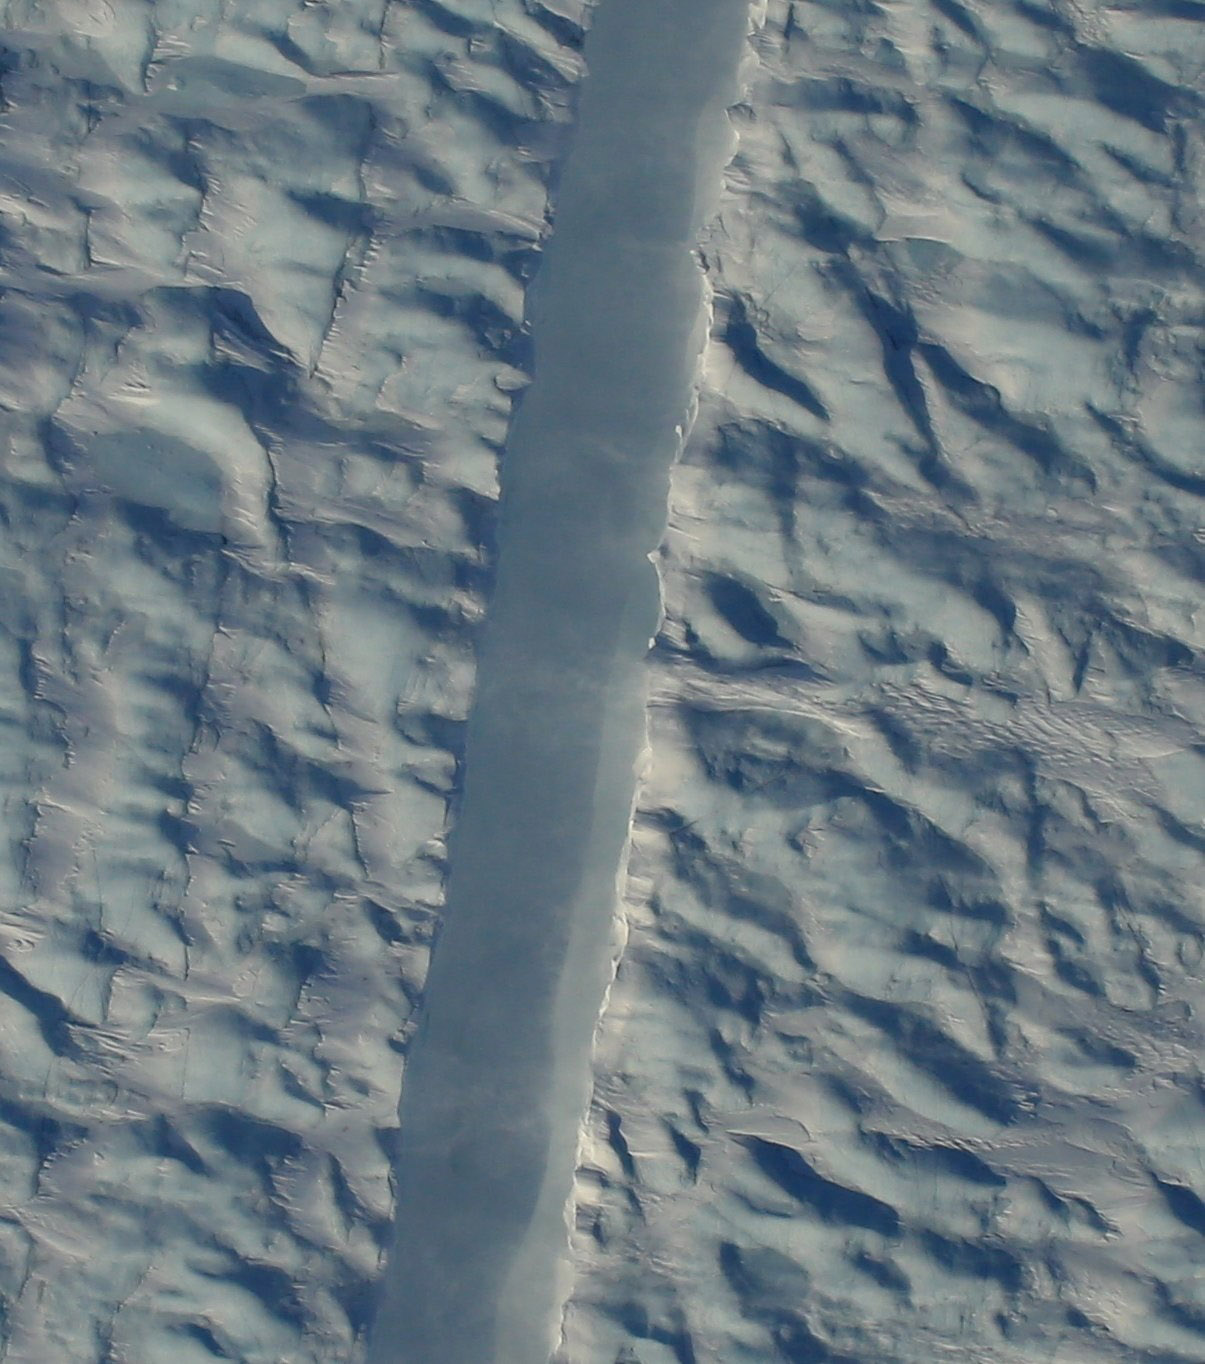 A preliminary image from NASA's Digital Mapping Service shows the new rift in Greenland's Petermann glacier, directly beneath the NASA Operation Icebridge aircraft. (NASA DMS photo by Gary Hoffmann)